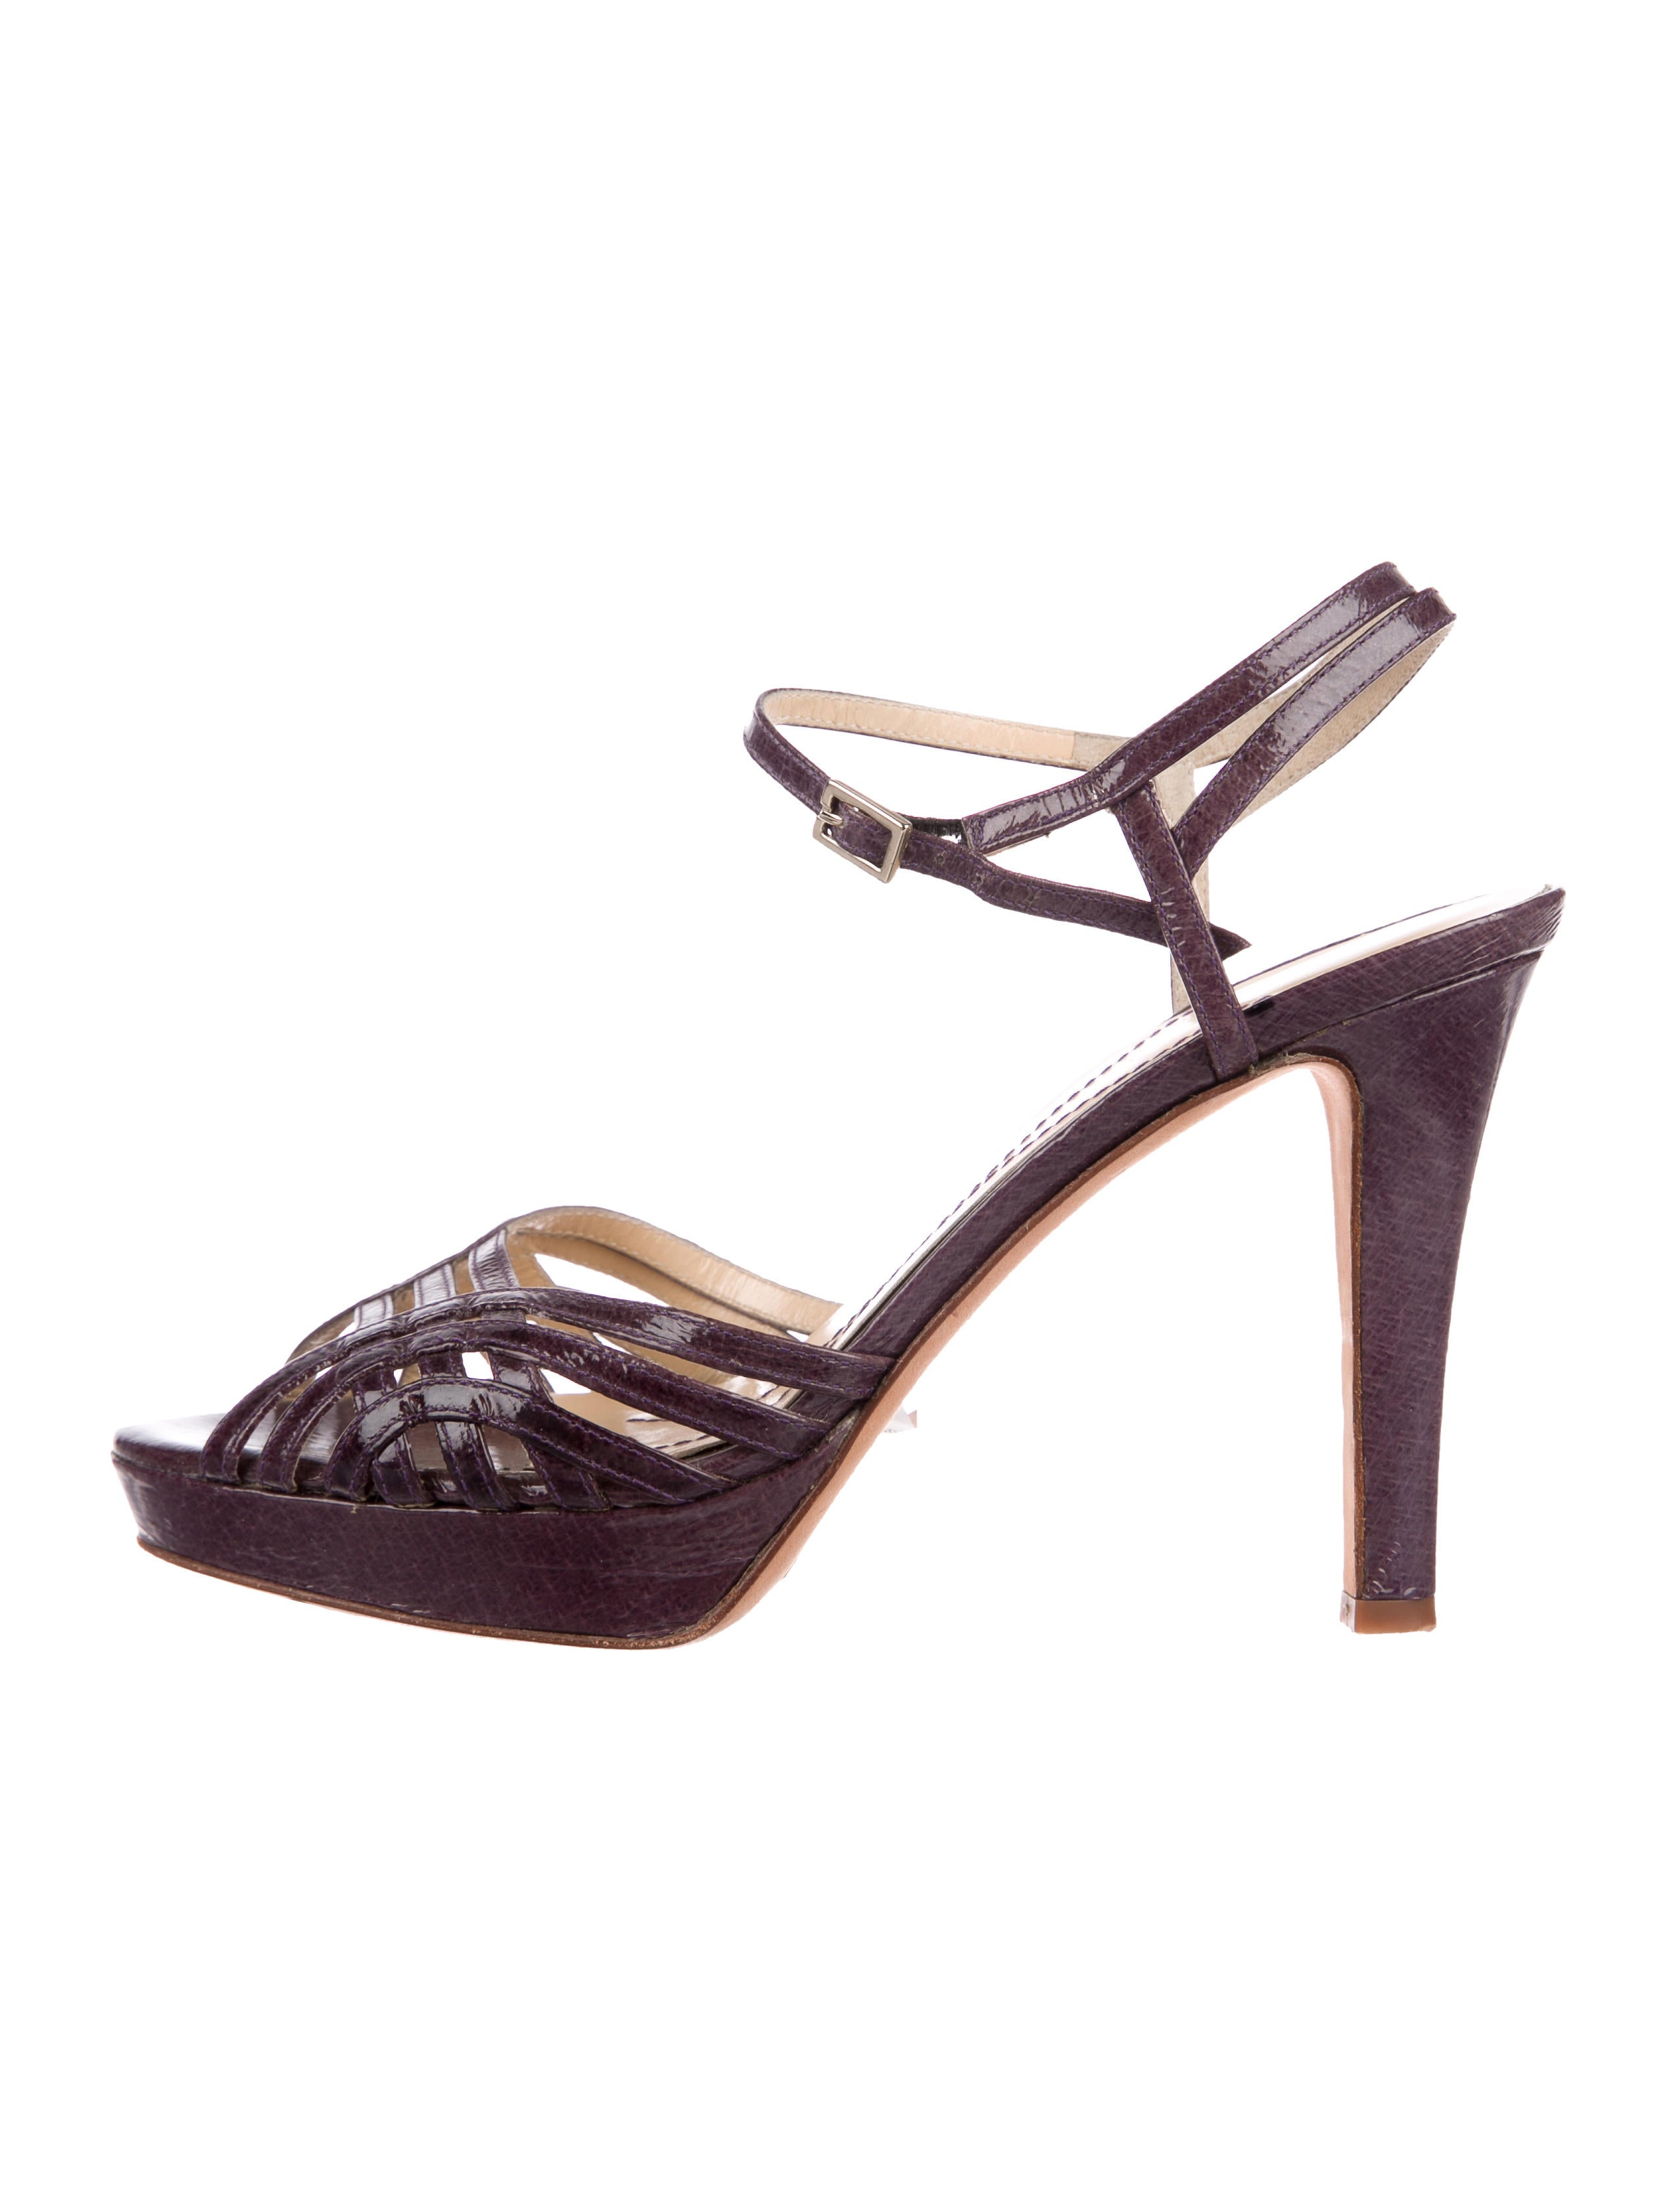 Kate Spade New York Leather Multistrap Sandals manchester great sale sale online 93ruZAI